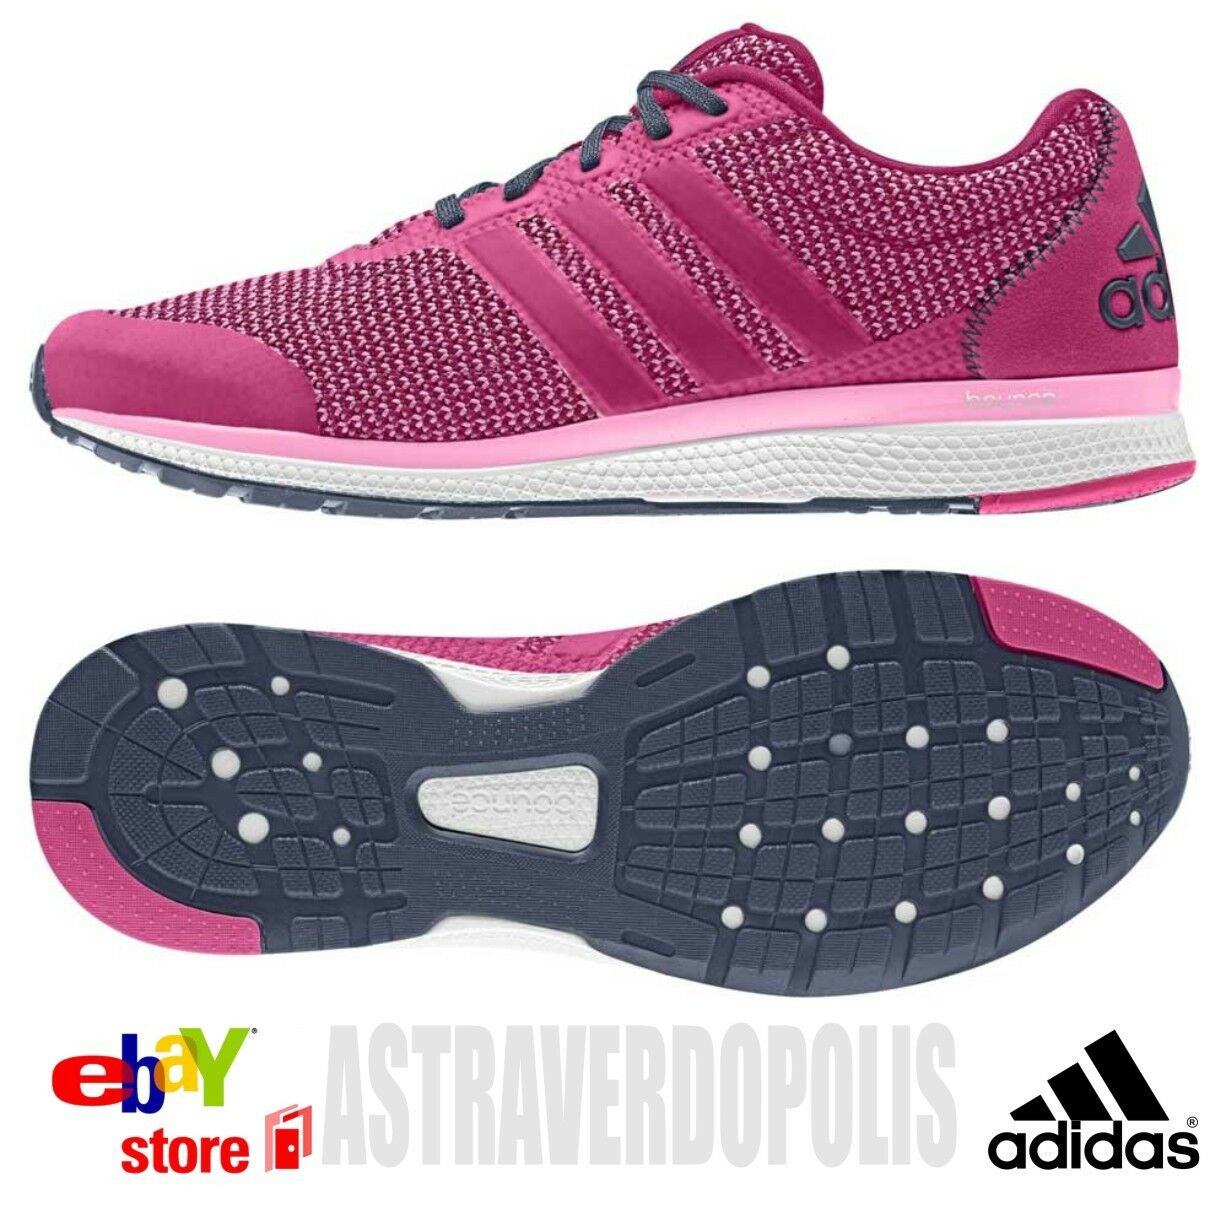 ADIDAS BOUNCE LIGHTSTER BOOST ULTRA ENERGY RUN WOMEN'S ATHLETIC SHOES US 8 8.5 9